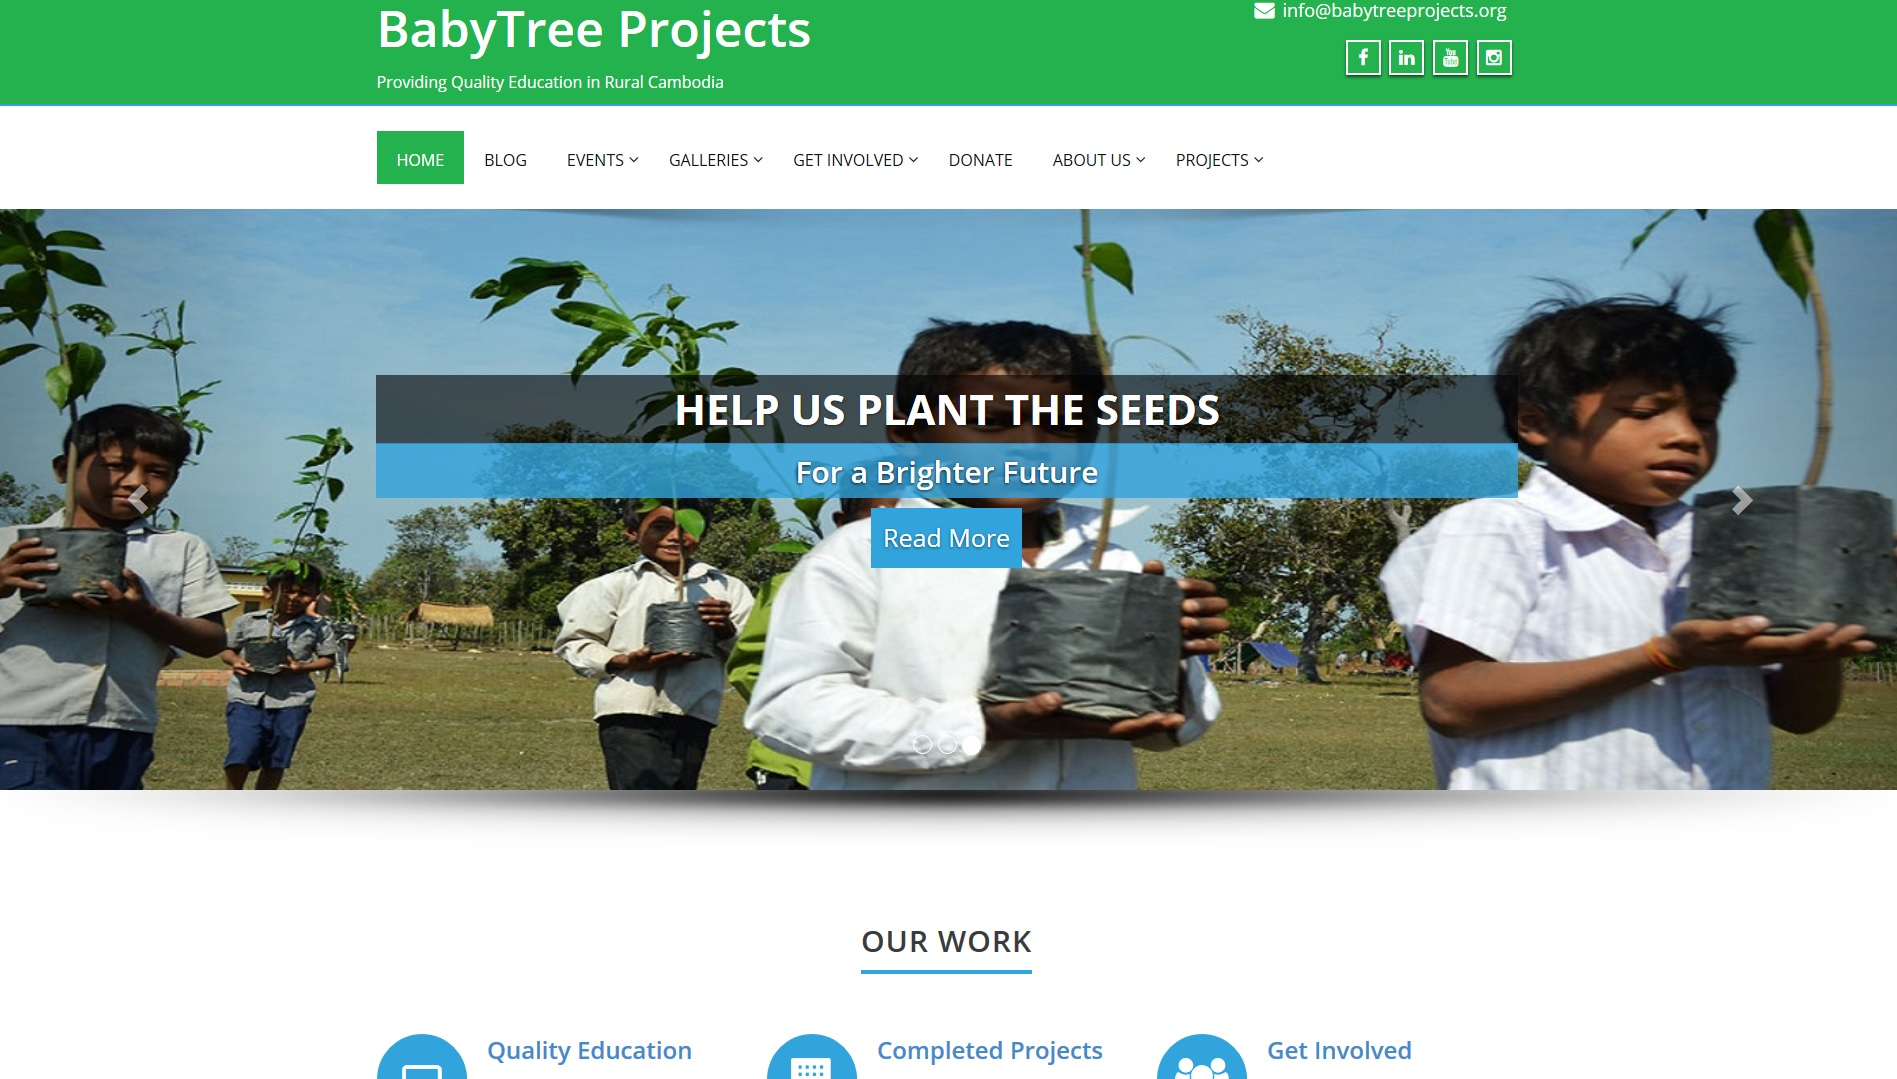 BabyTree Projects Website